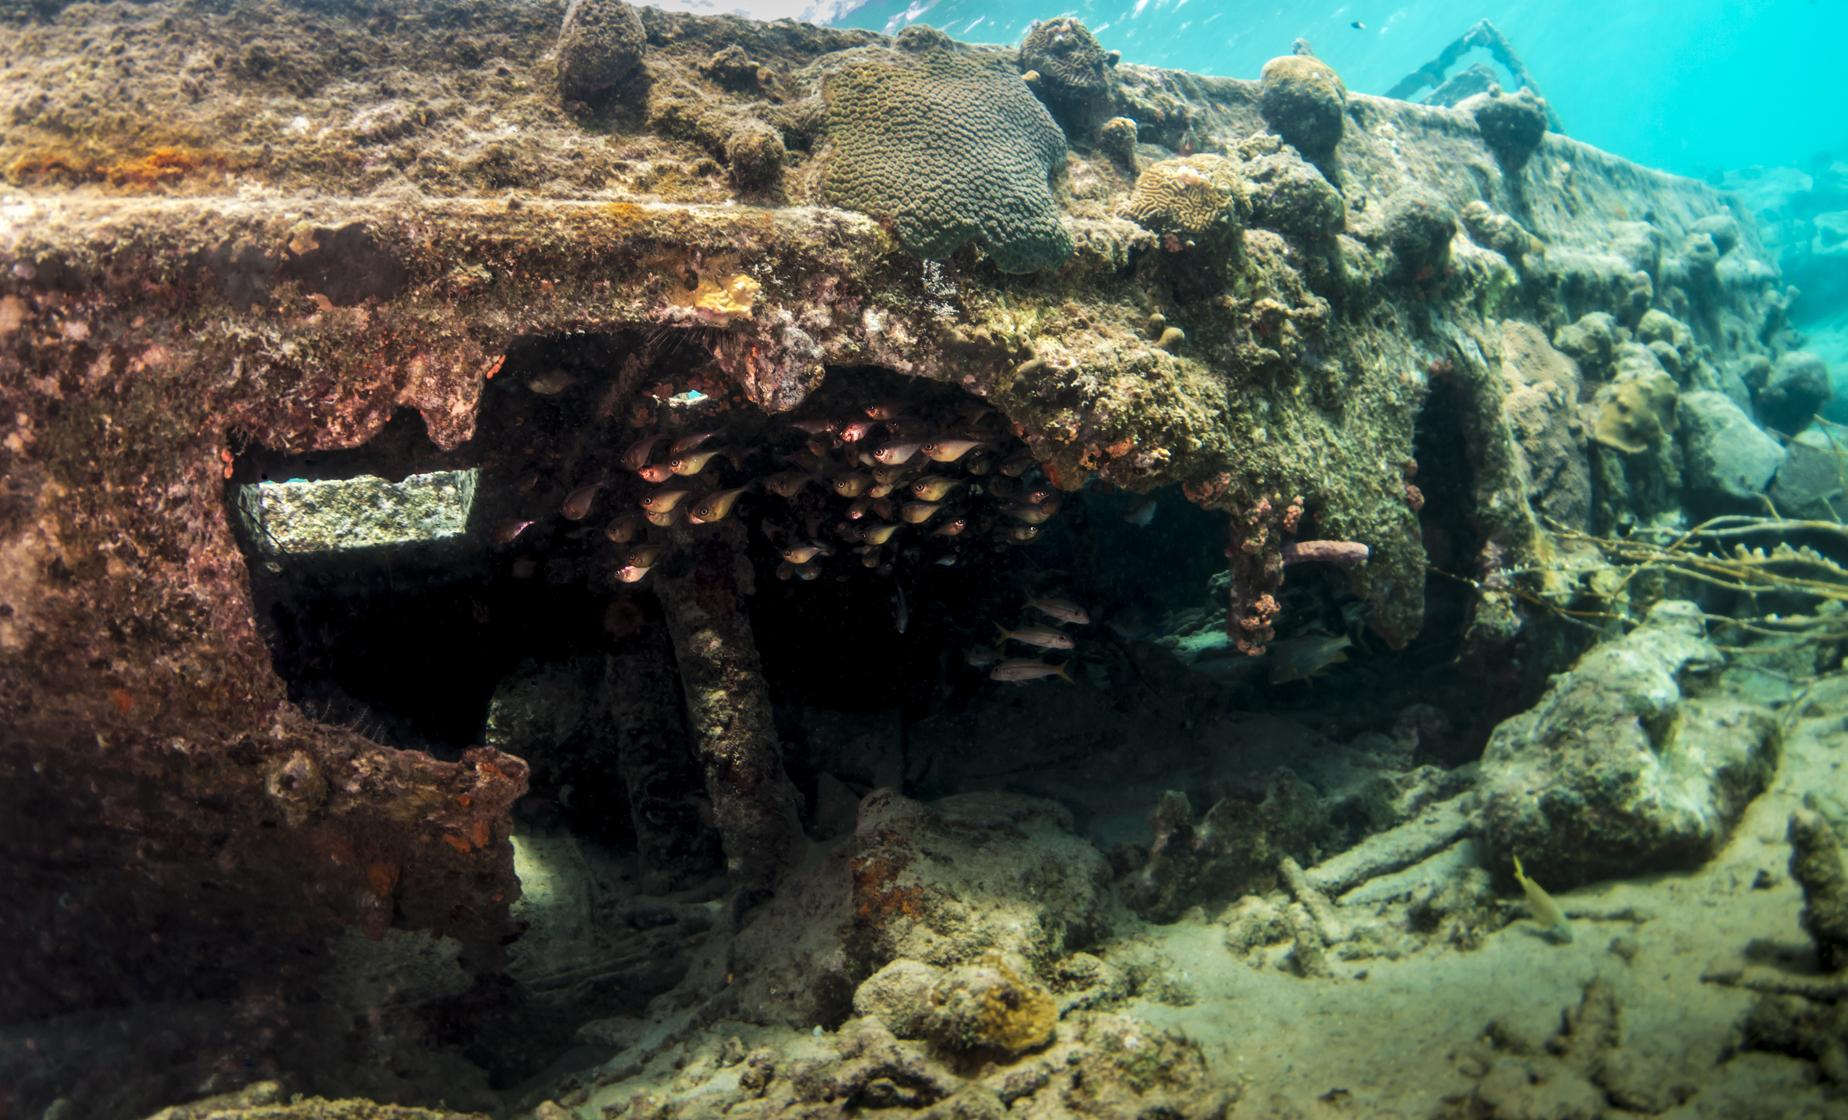 Sunken Tugboat and Reef Snorkel in Curacao Fort Beekenburg